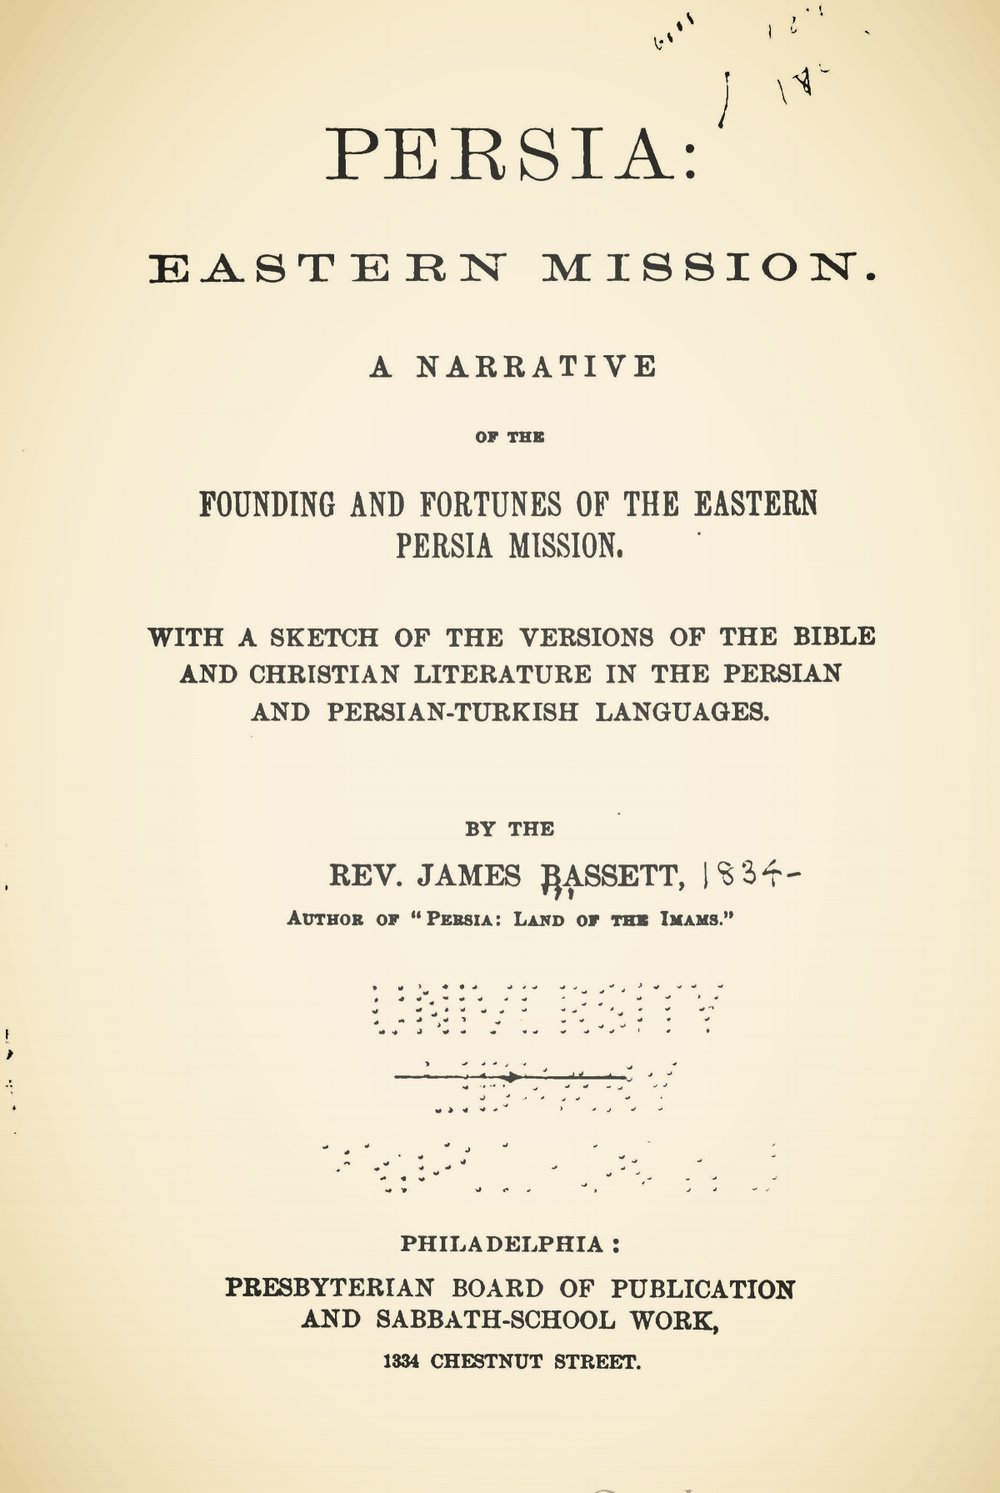 Bassett, James, Persia Eastern Mission Title Page.jpg